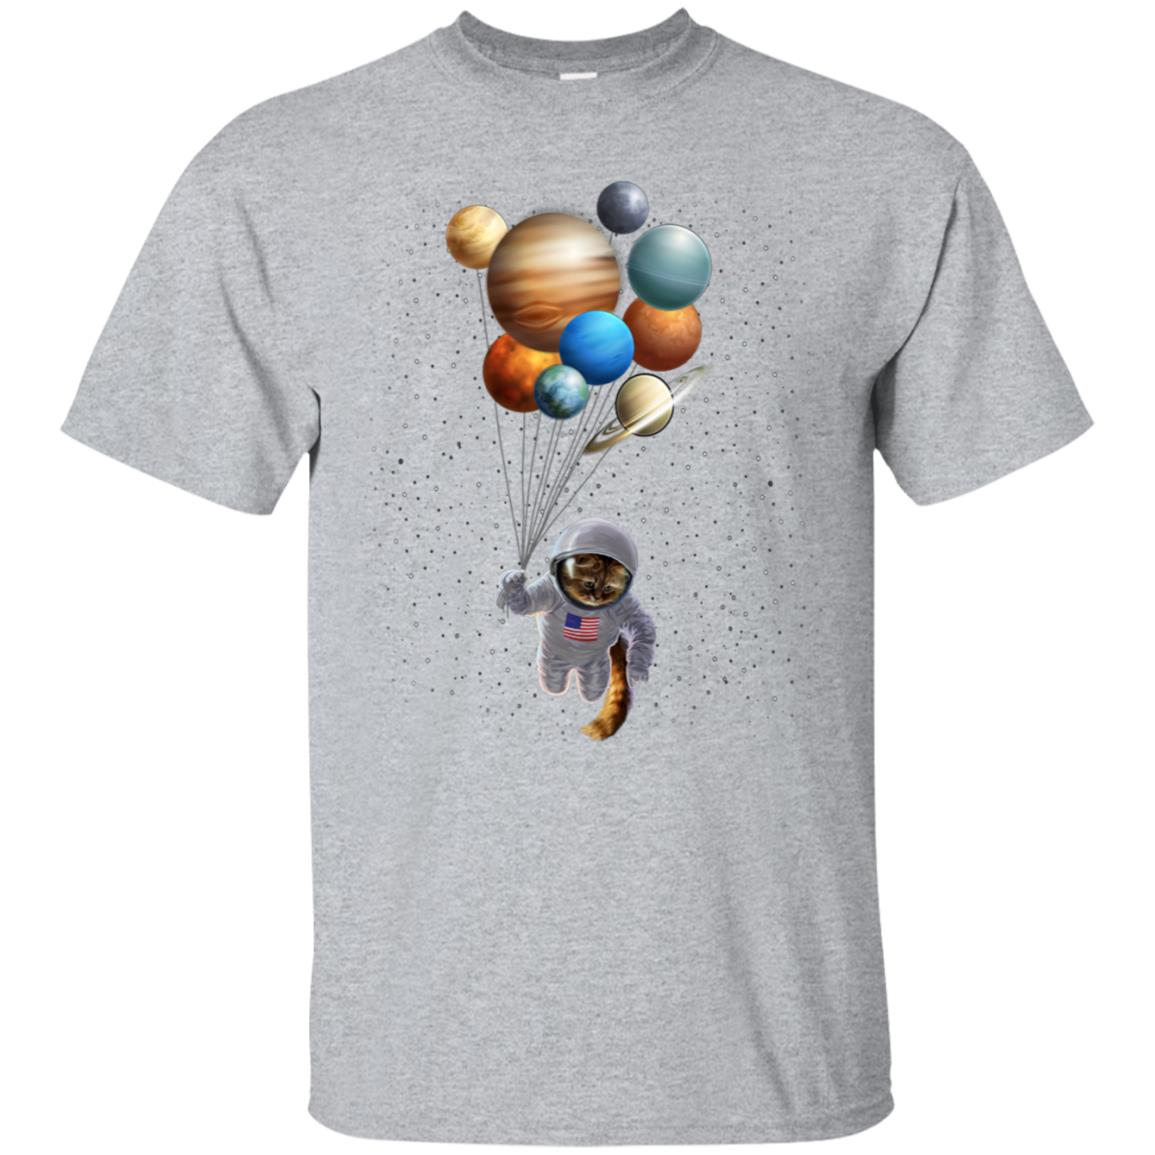 Astronaut Cat in Space Holding Planet Balloon, T-Shirt 99promocode